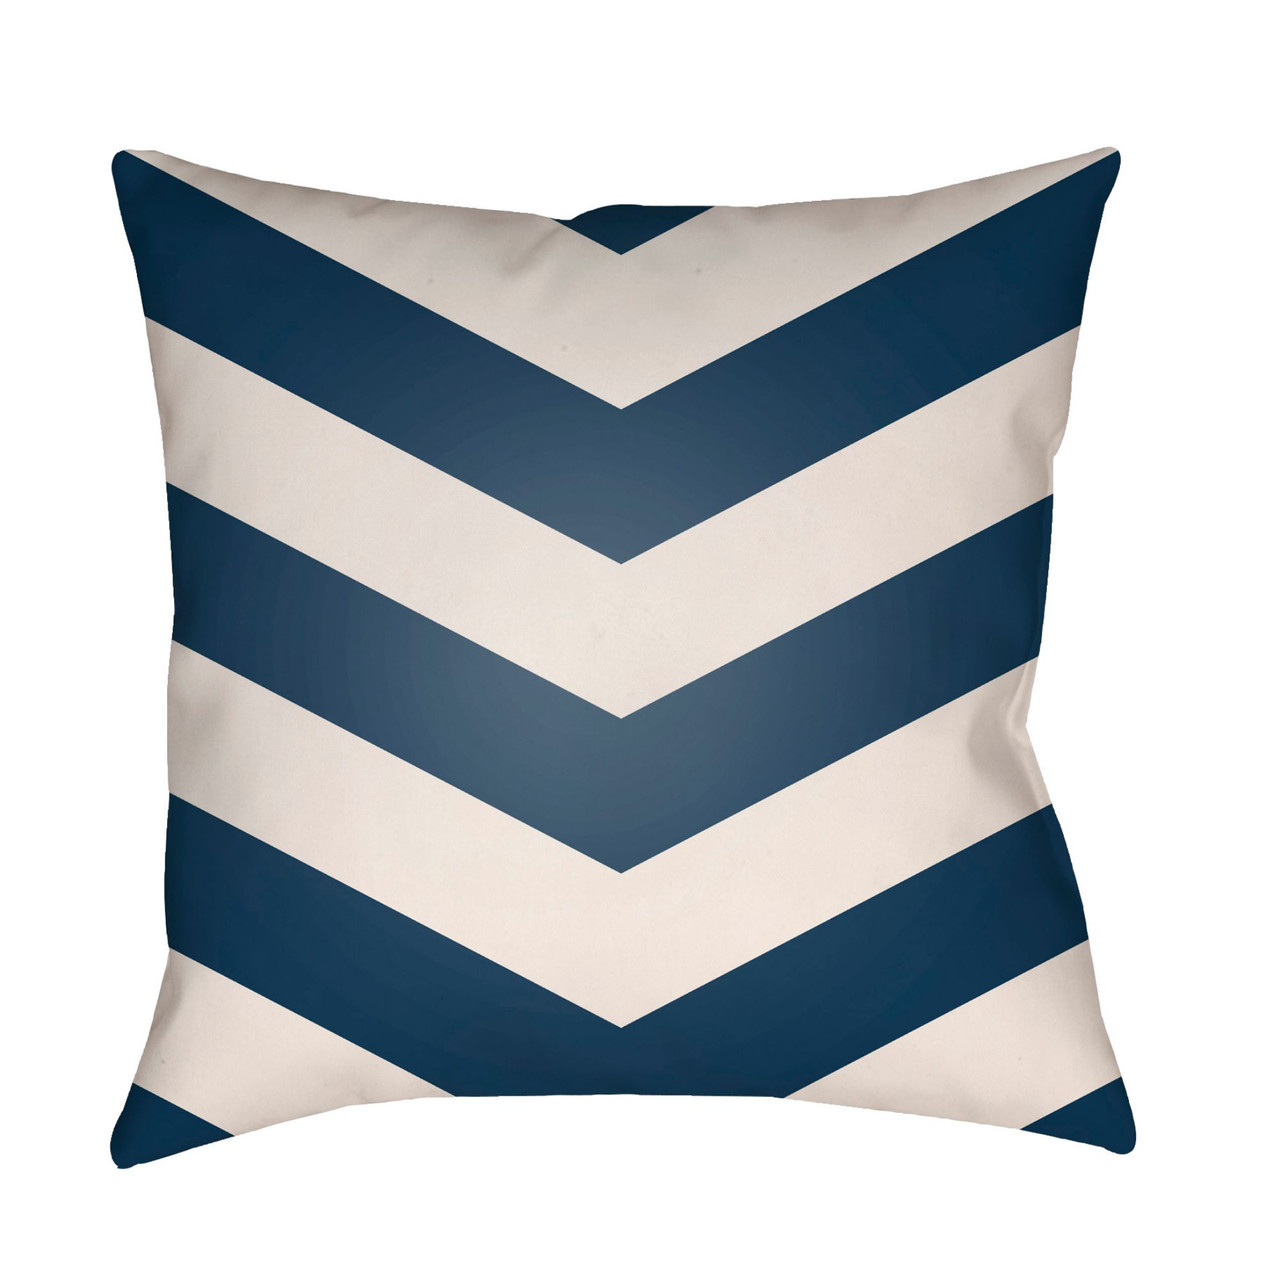 18 navy blue and white chevron square throw pillow cover